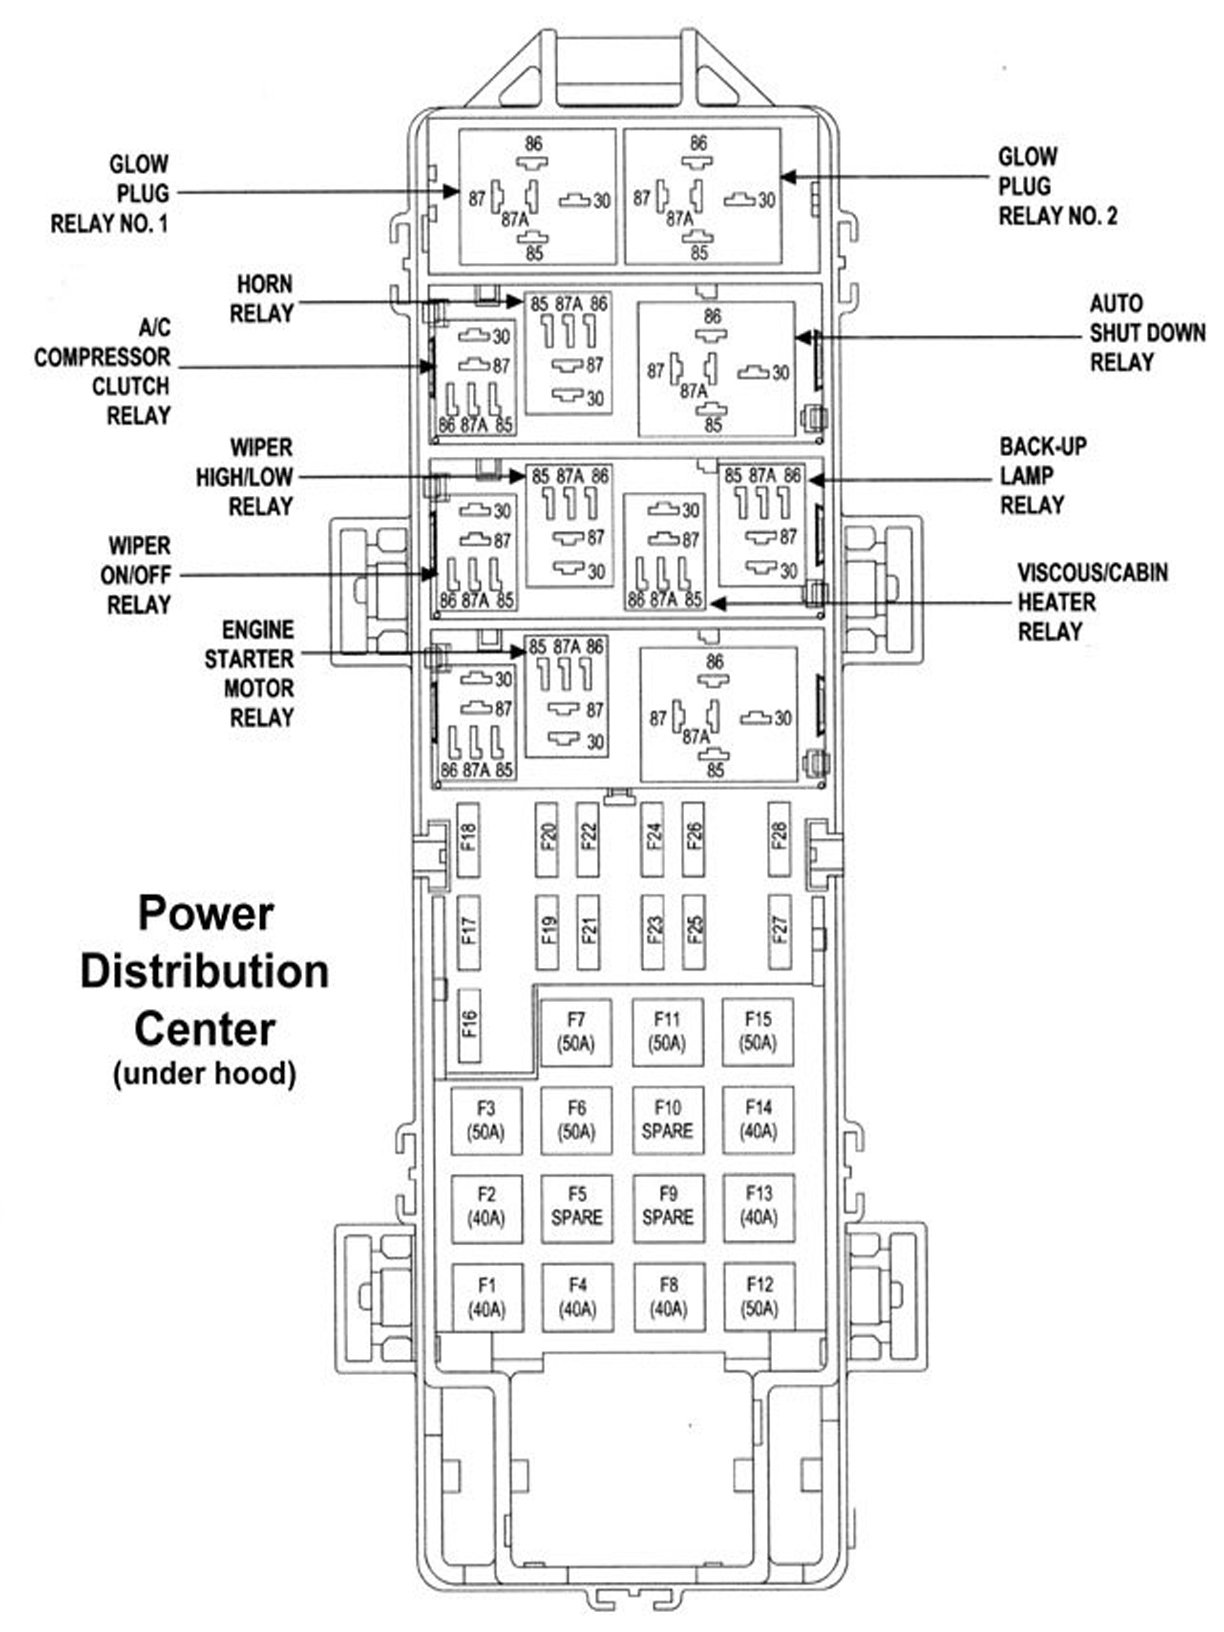 Jeep Grand Cherokee 1999 2004 Fuse Box Diagram 397760 on jeep cherokee xj 6 5 lift